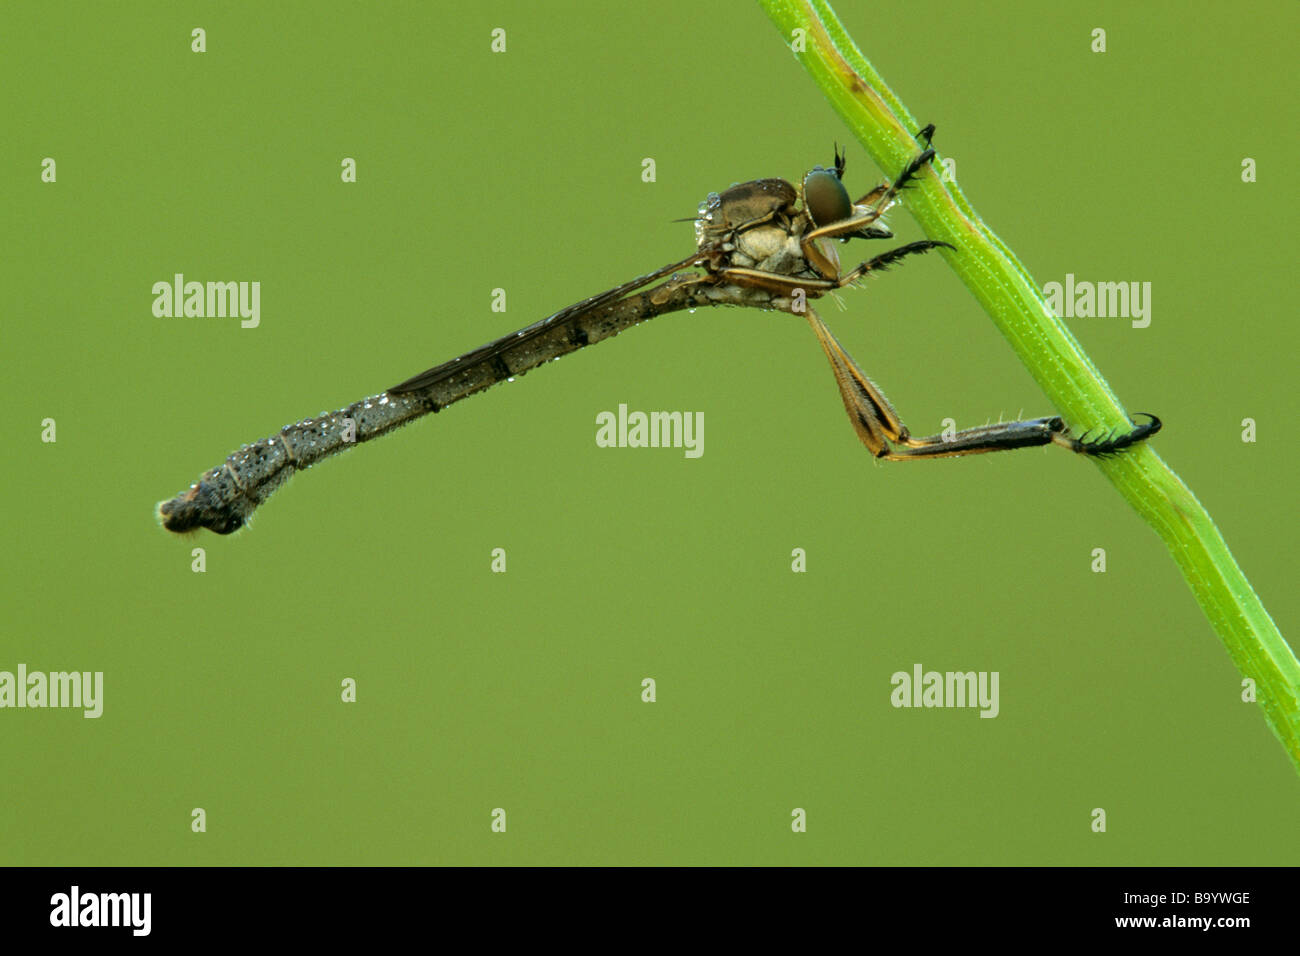 Robber Fly (Asilidae), adult clinging to a stem - Stock Image